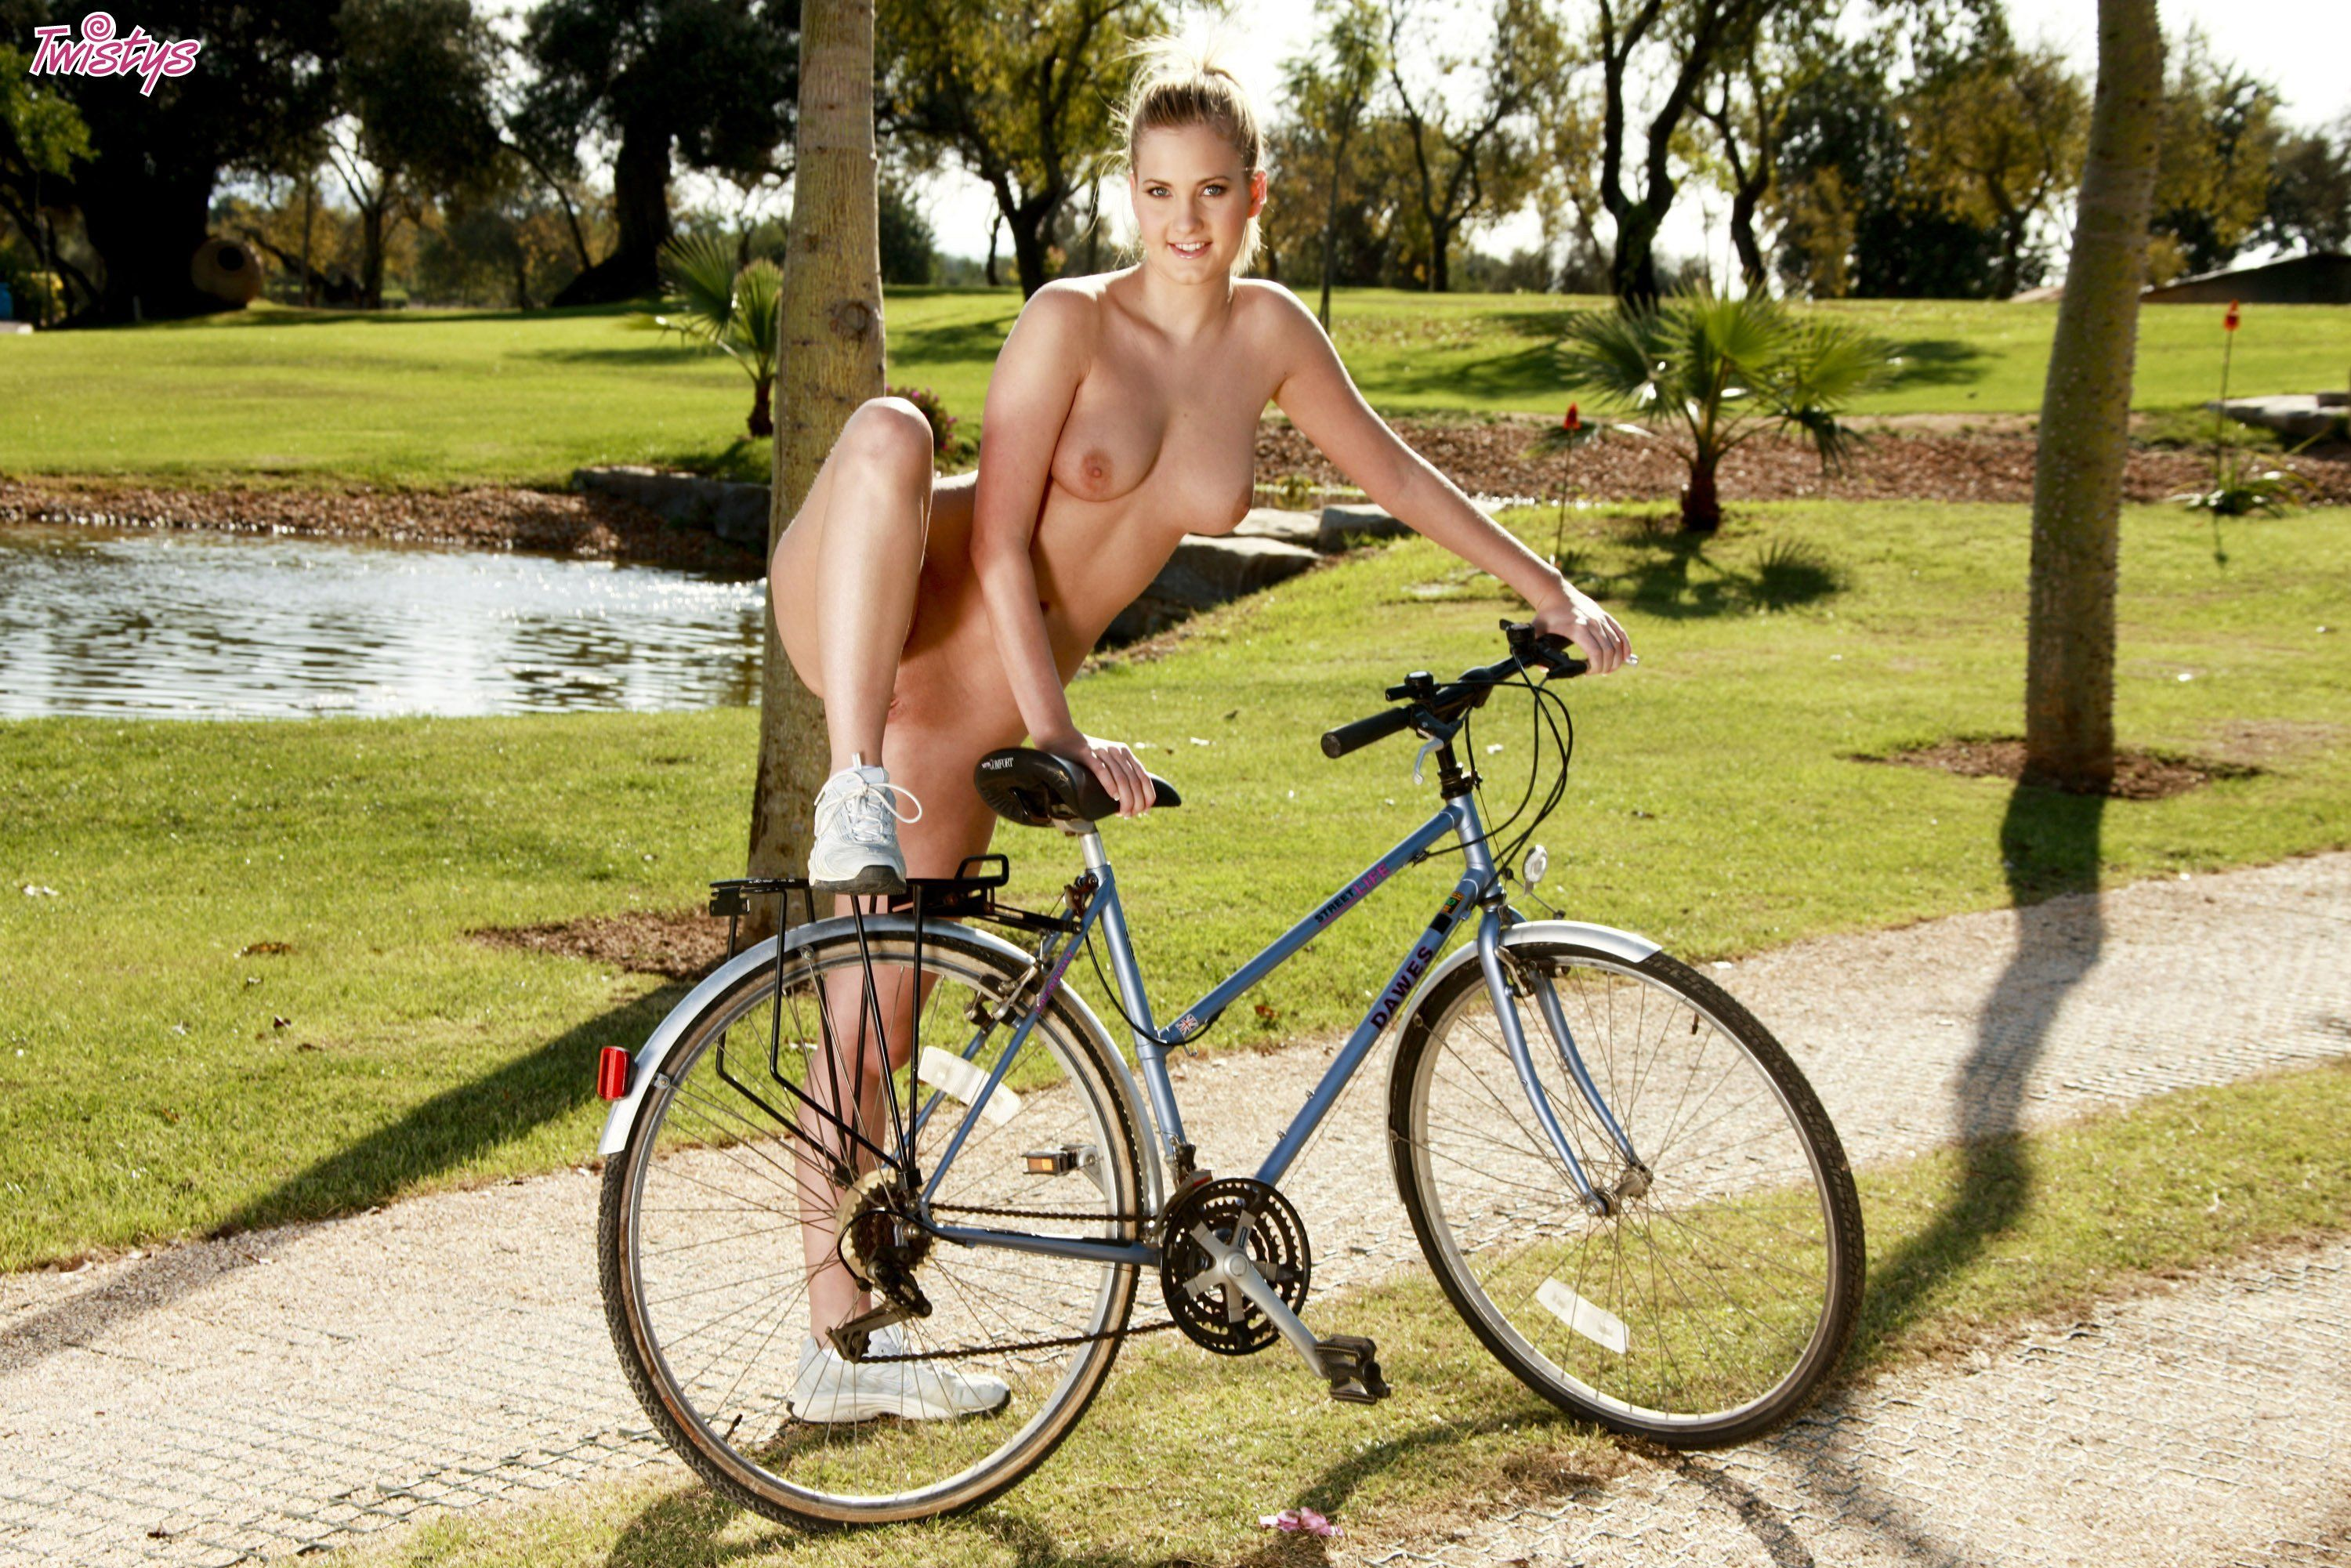 best of Girls riding bicles Nude